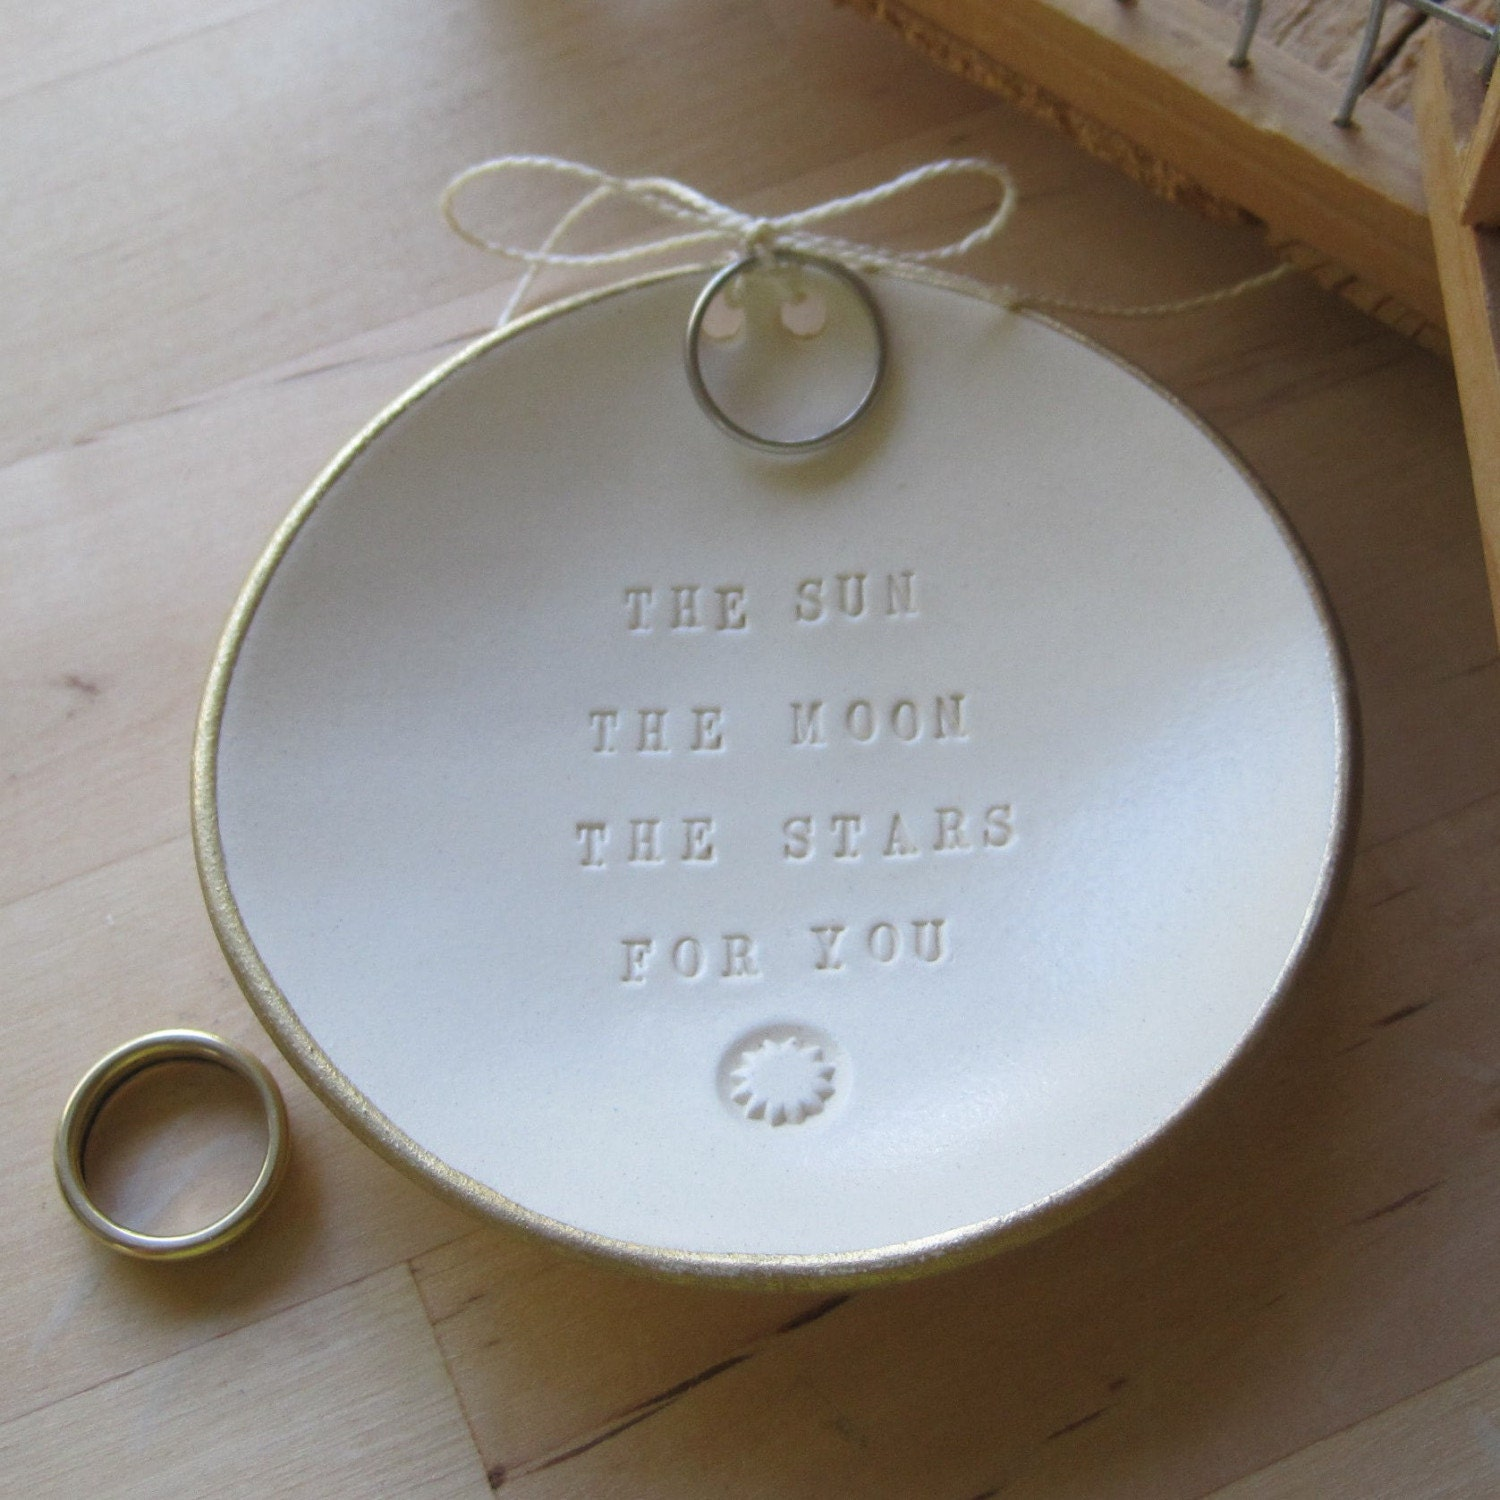 as seen in Martha Stewart Weddings Magazine THE SUN THE MOON THE STARS FOR YOU ring bearer bowl (TM) with gold leaf edge by Paloma's Nest- wedding or commitment ceremony